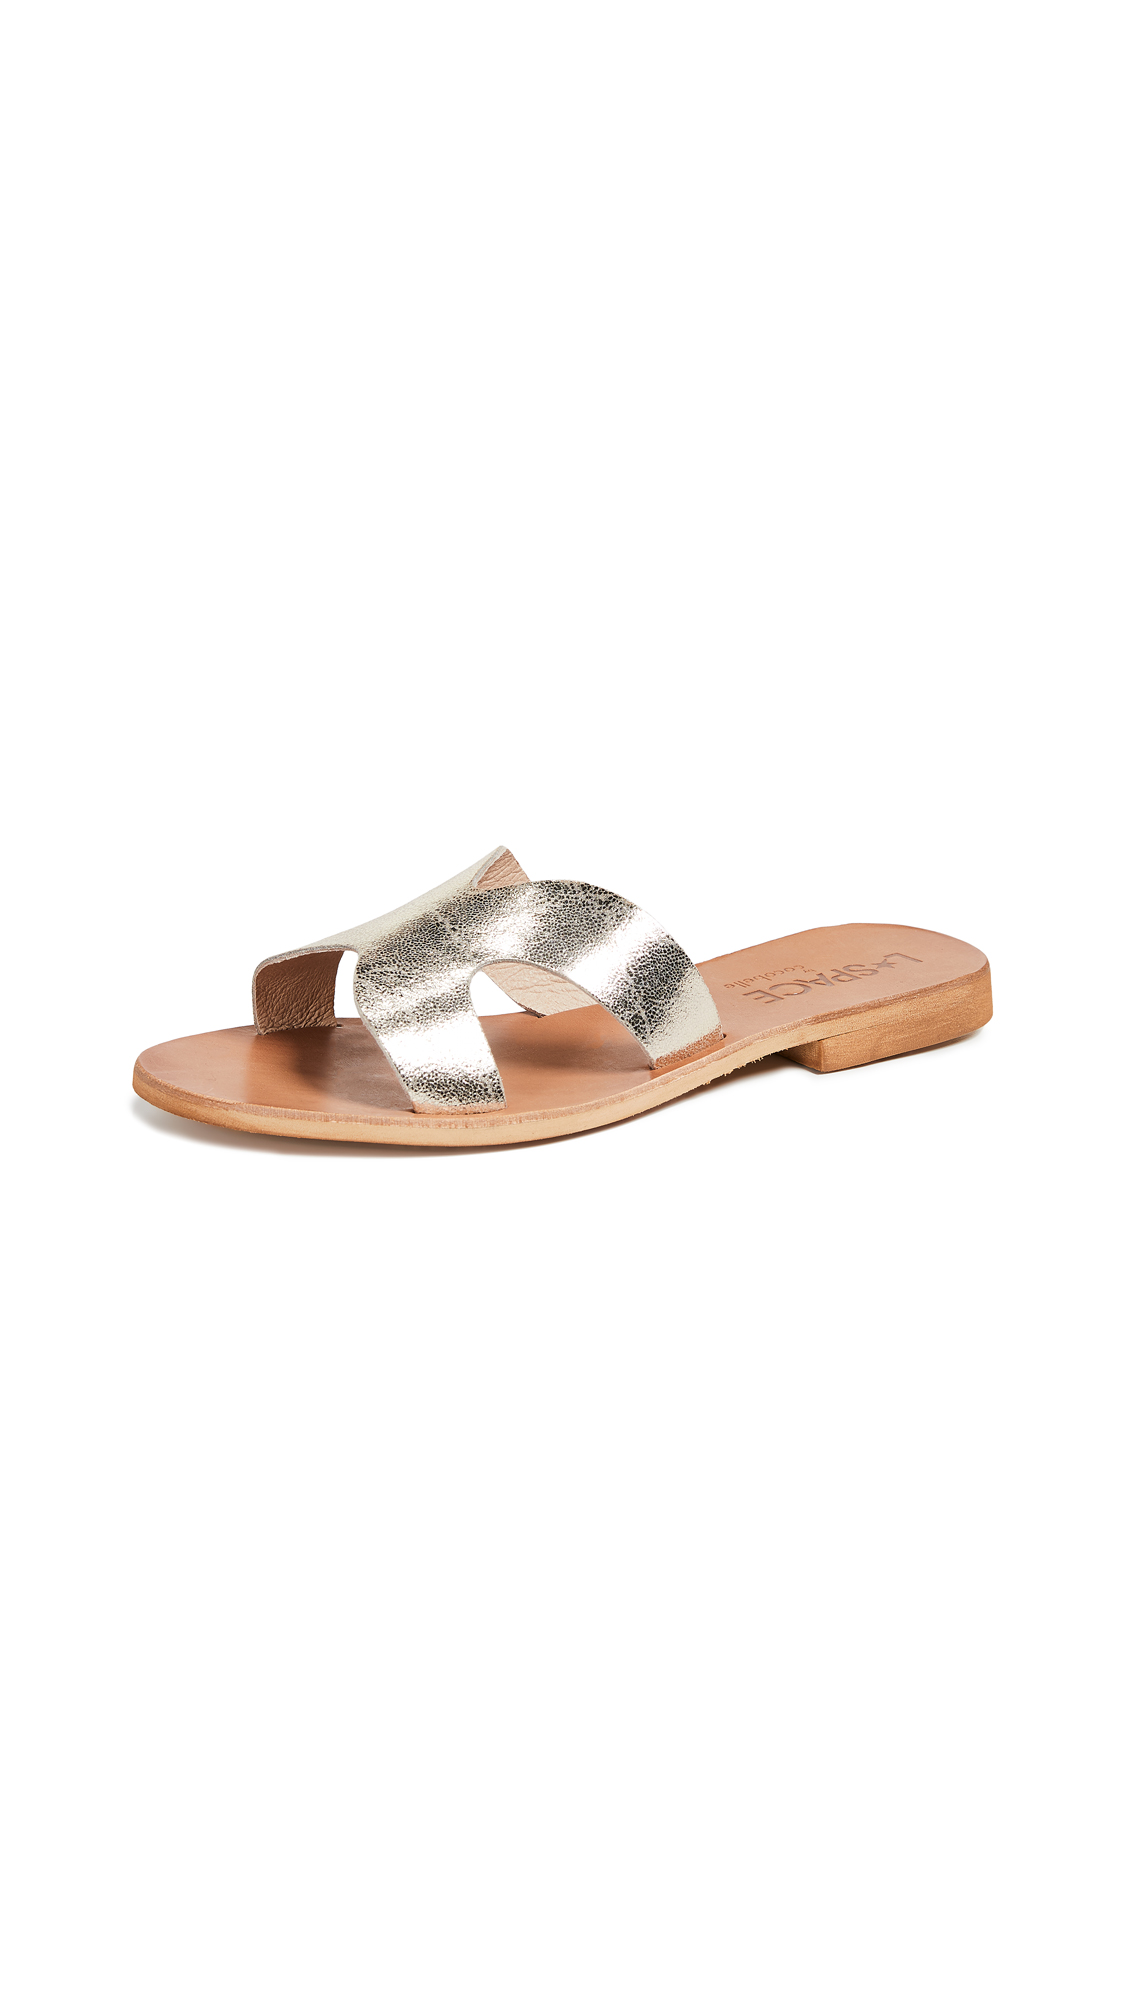 Cocobelle x L*Space Los Slide Sandals - Antique Gold